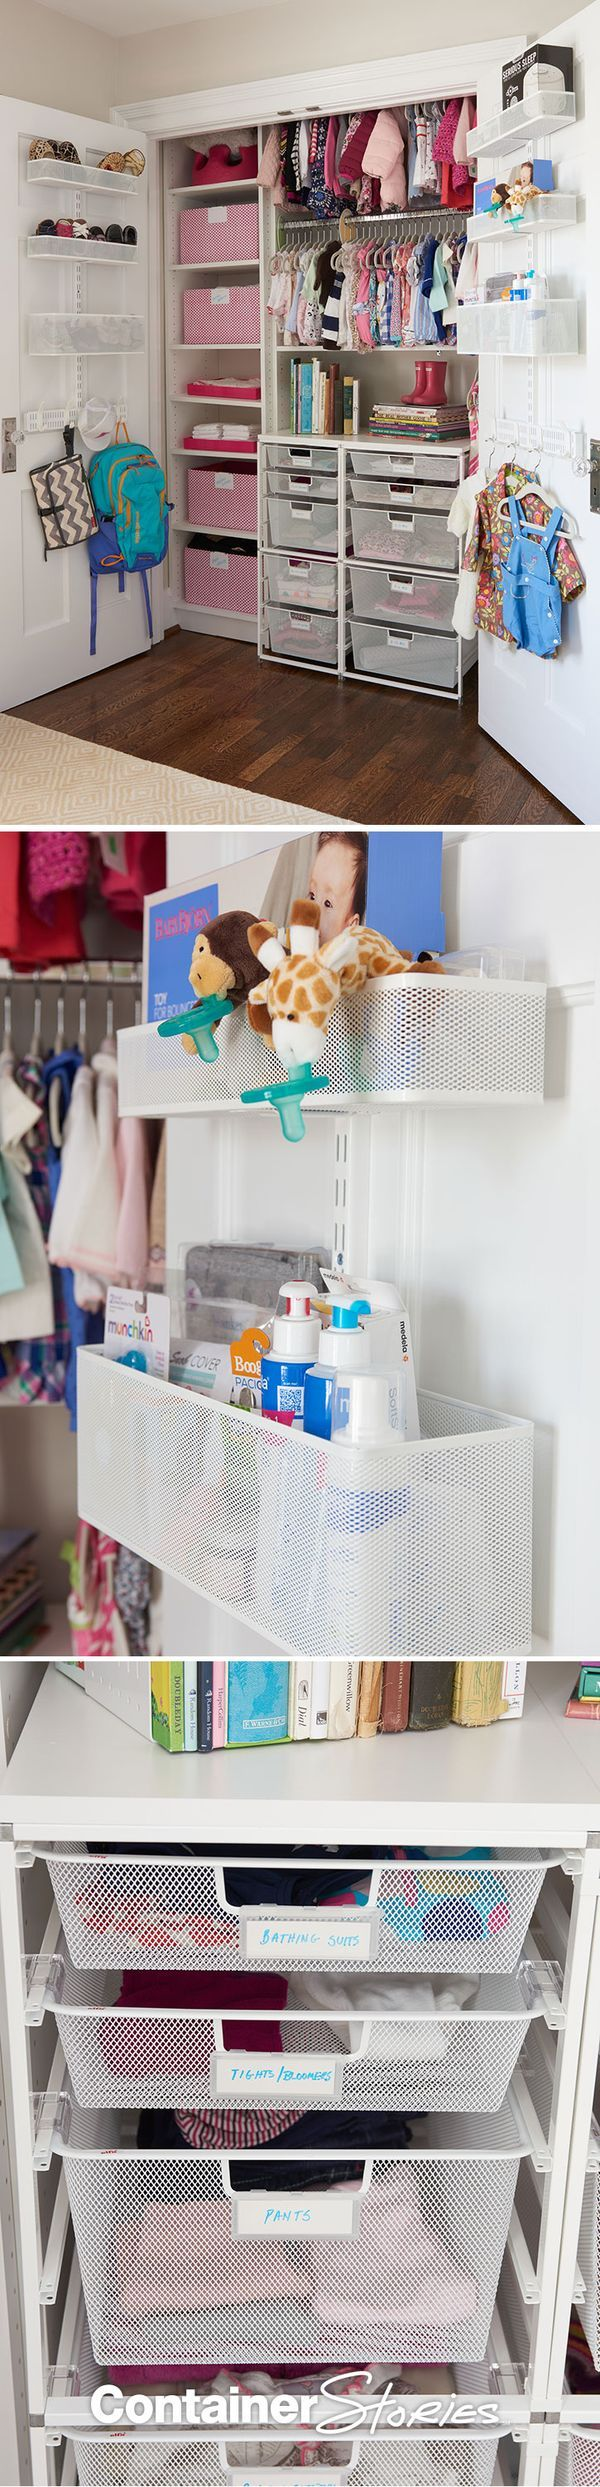 Check out how we used elfa custom closet solutions, gingham bins and more to perfectly organize this sweet newborn's new nursery!